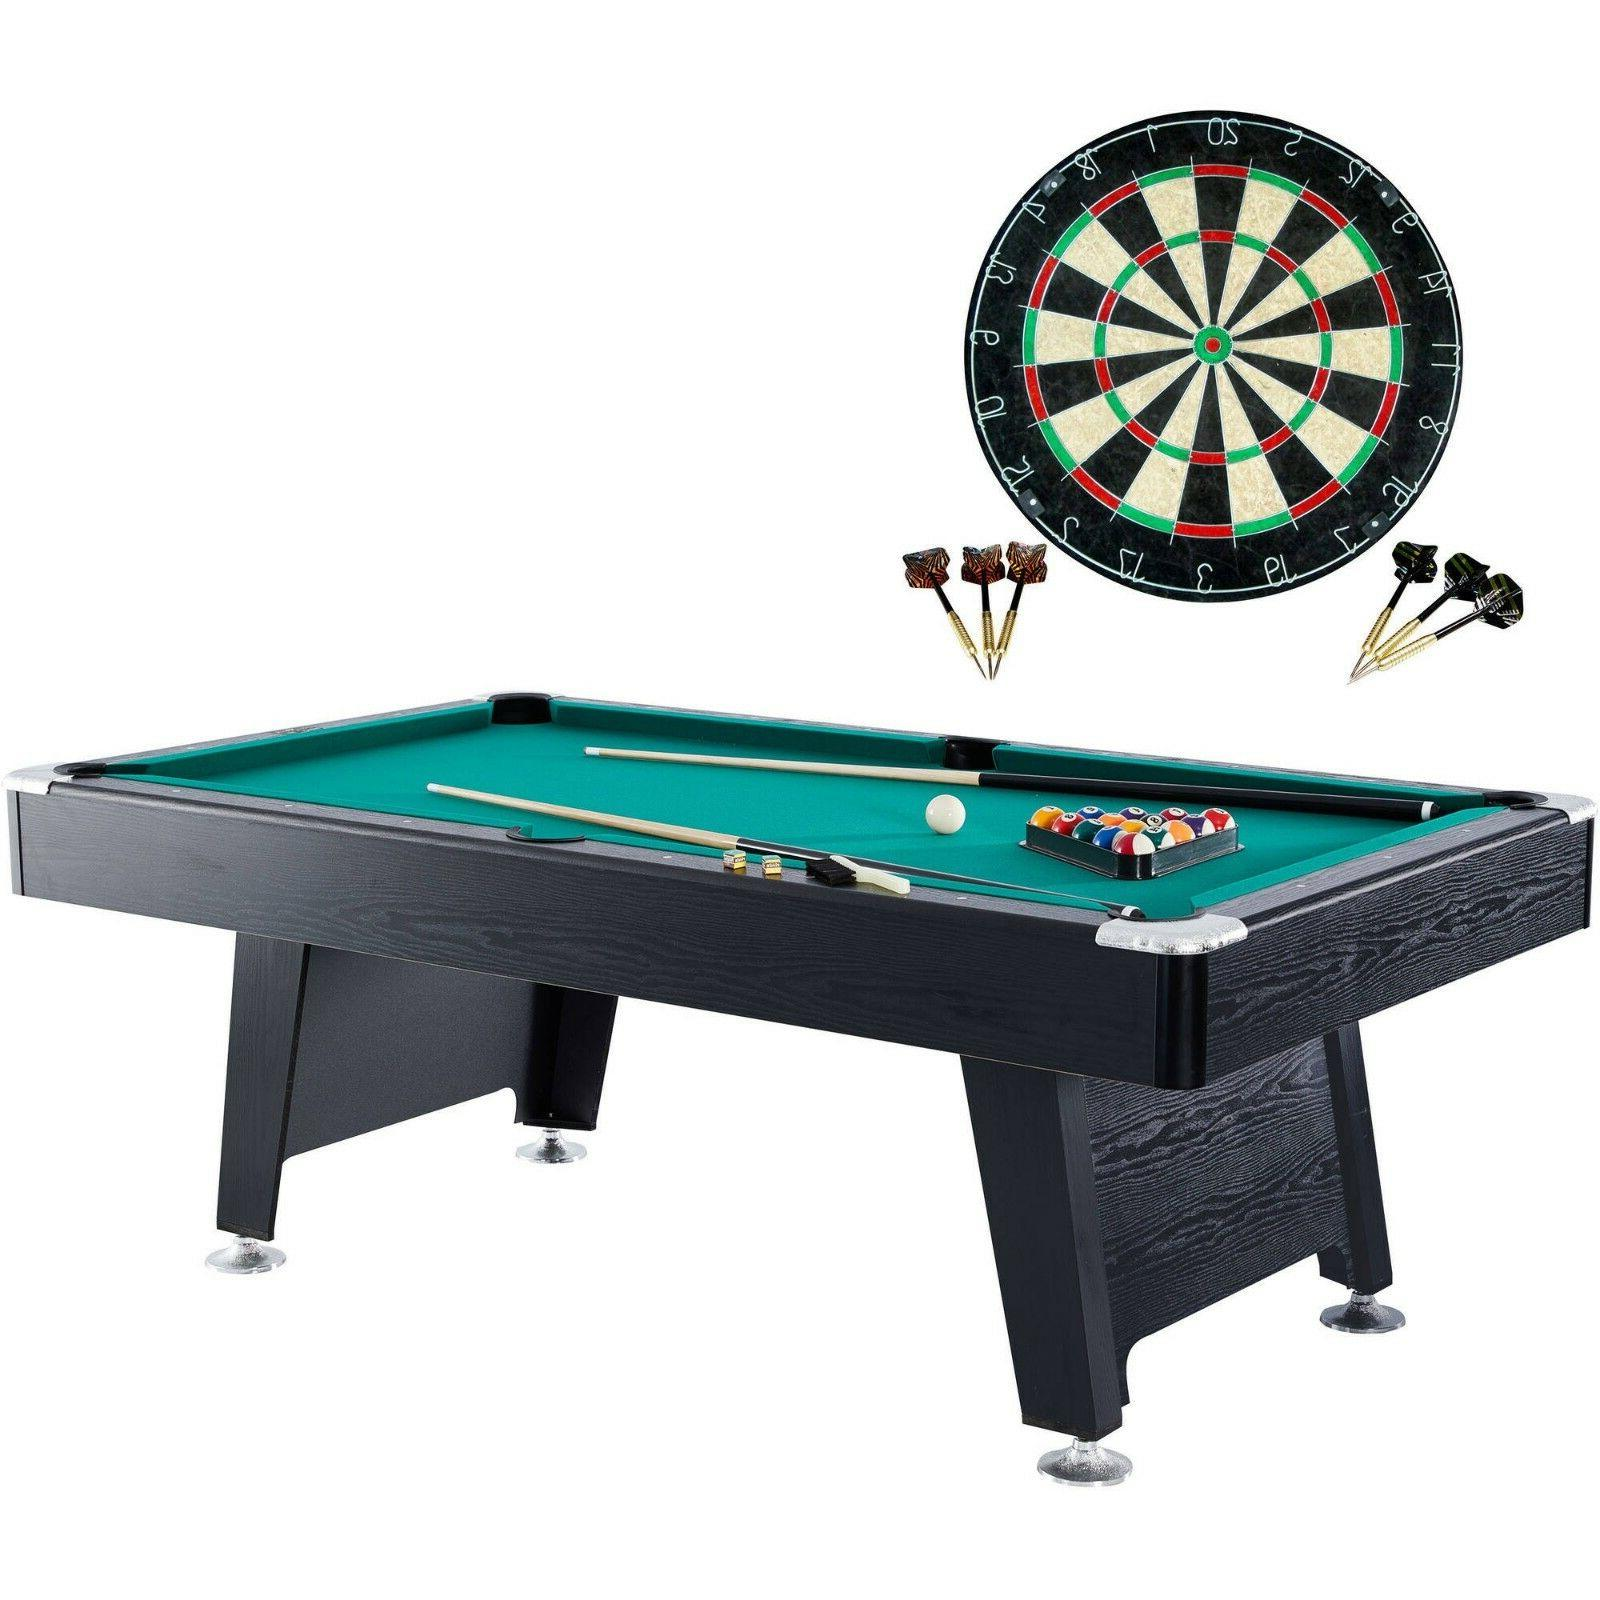 Pool Room 84-inch Billiard Table With Set